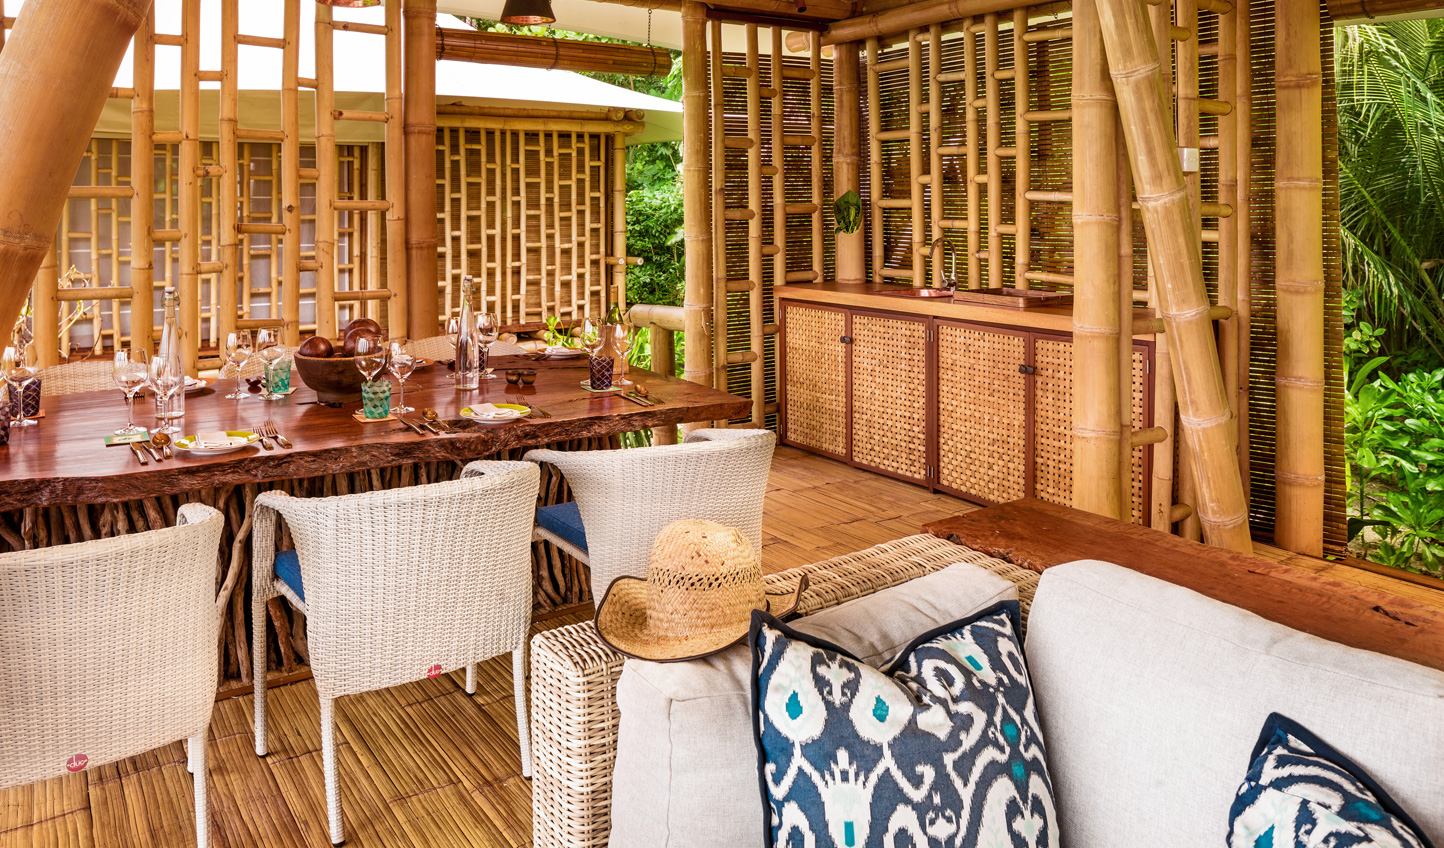 Fresh, tropical flavours served in relaxed surroundings